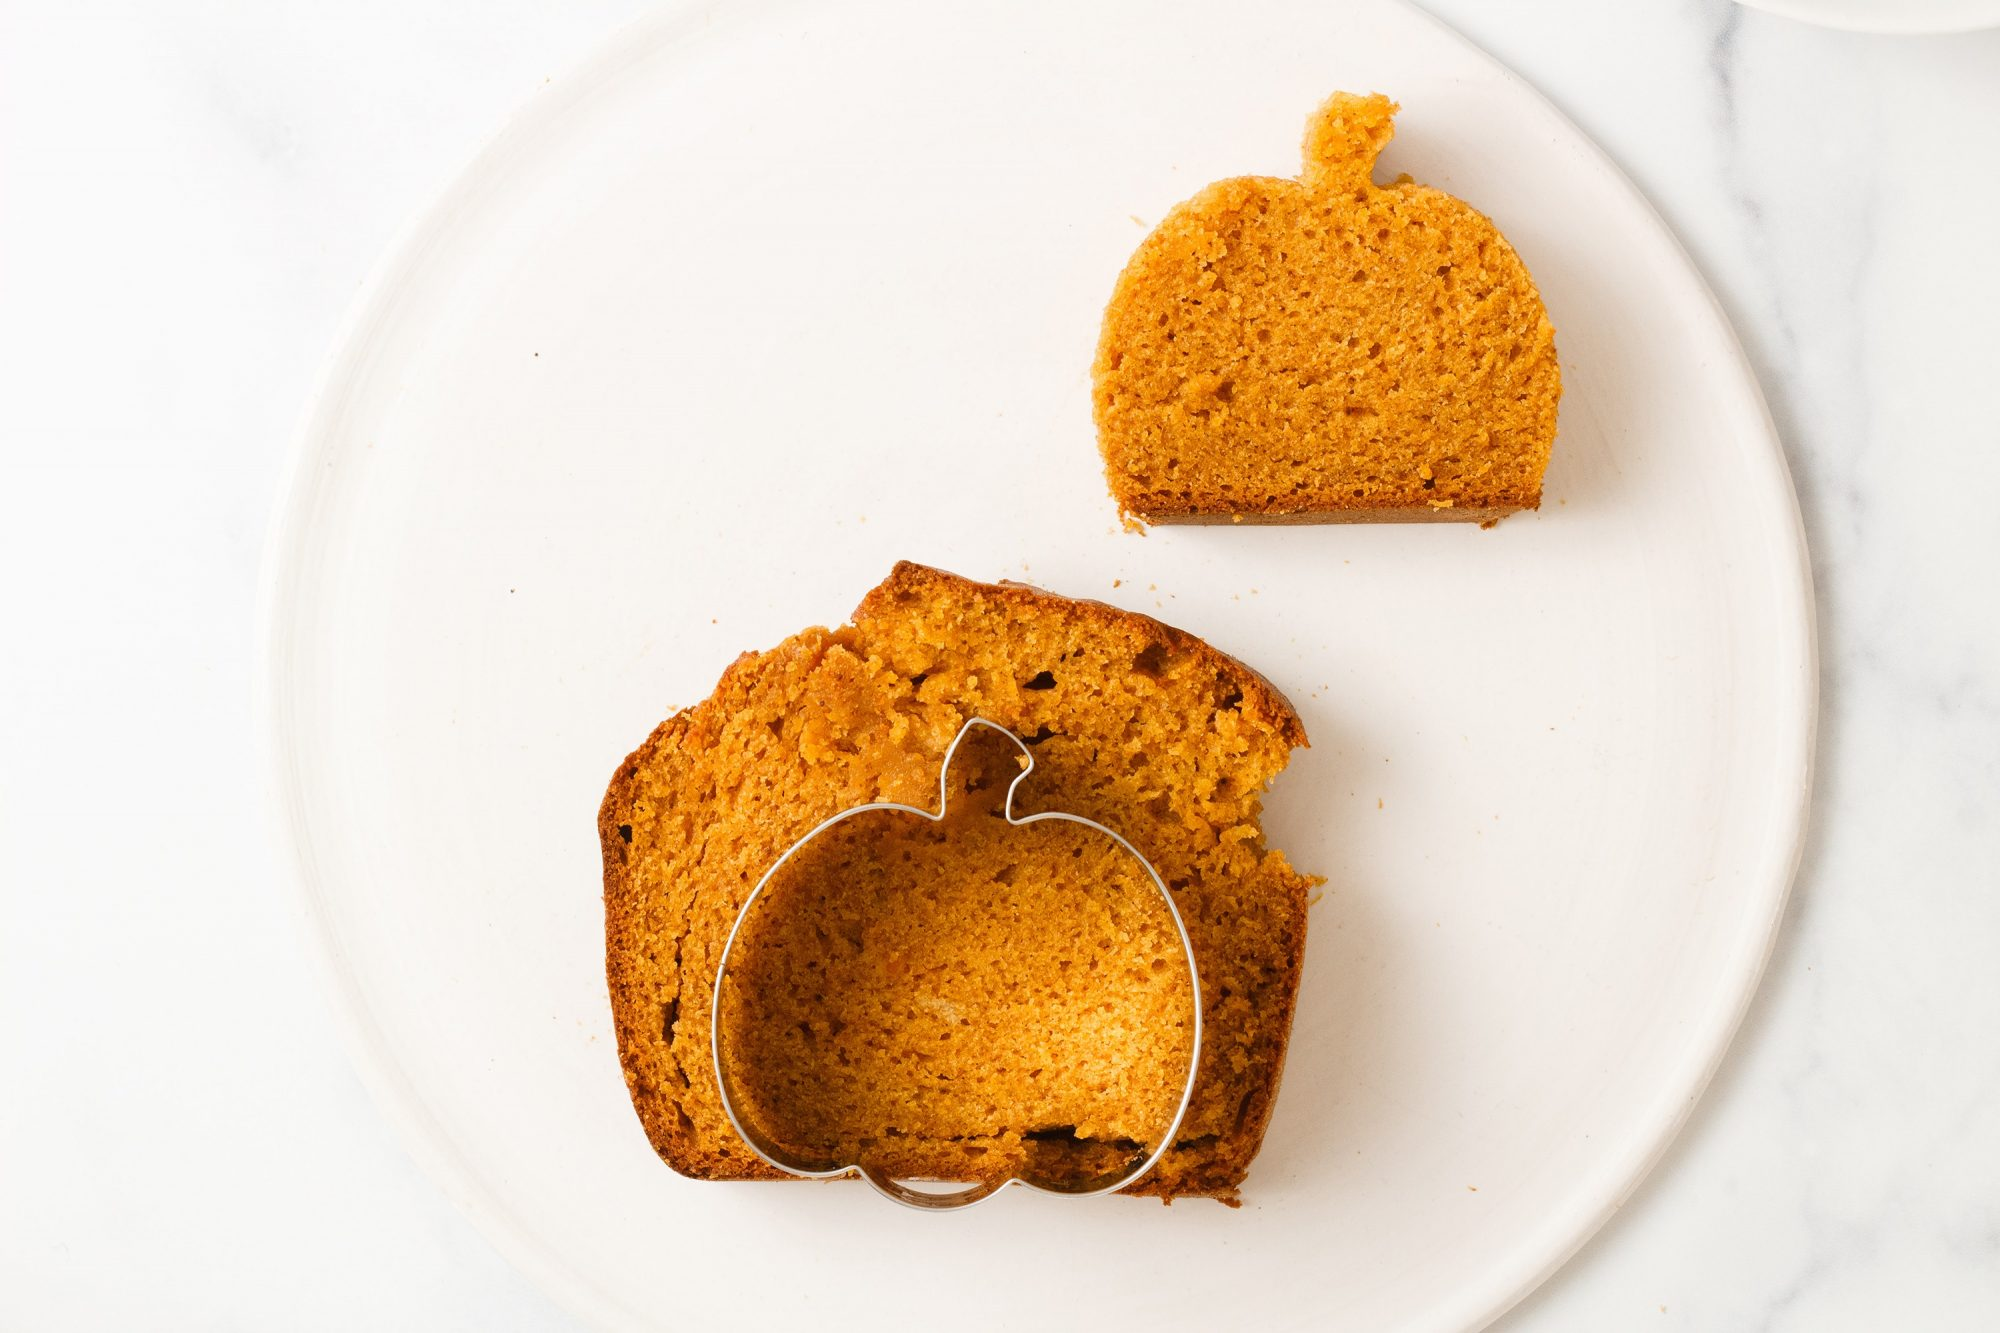 using a pumpkin-shaped cookie cutter to cut out pumpkin shapes from slices of pumpkin spice cake